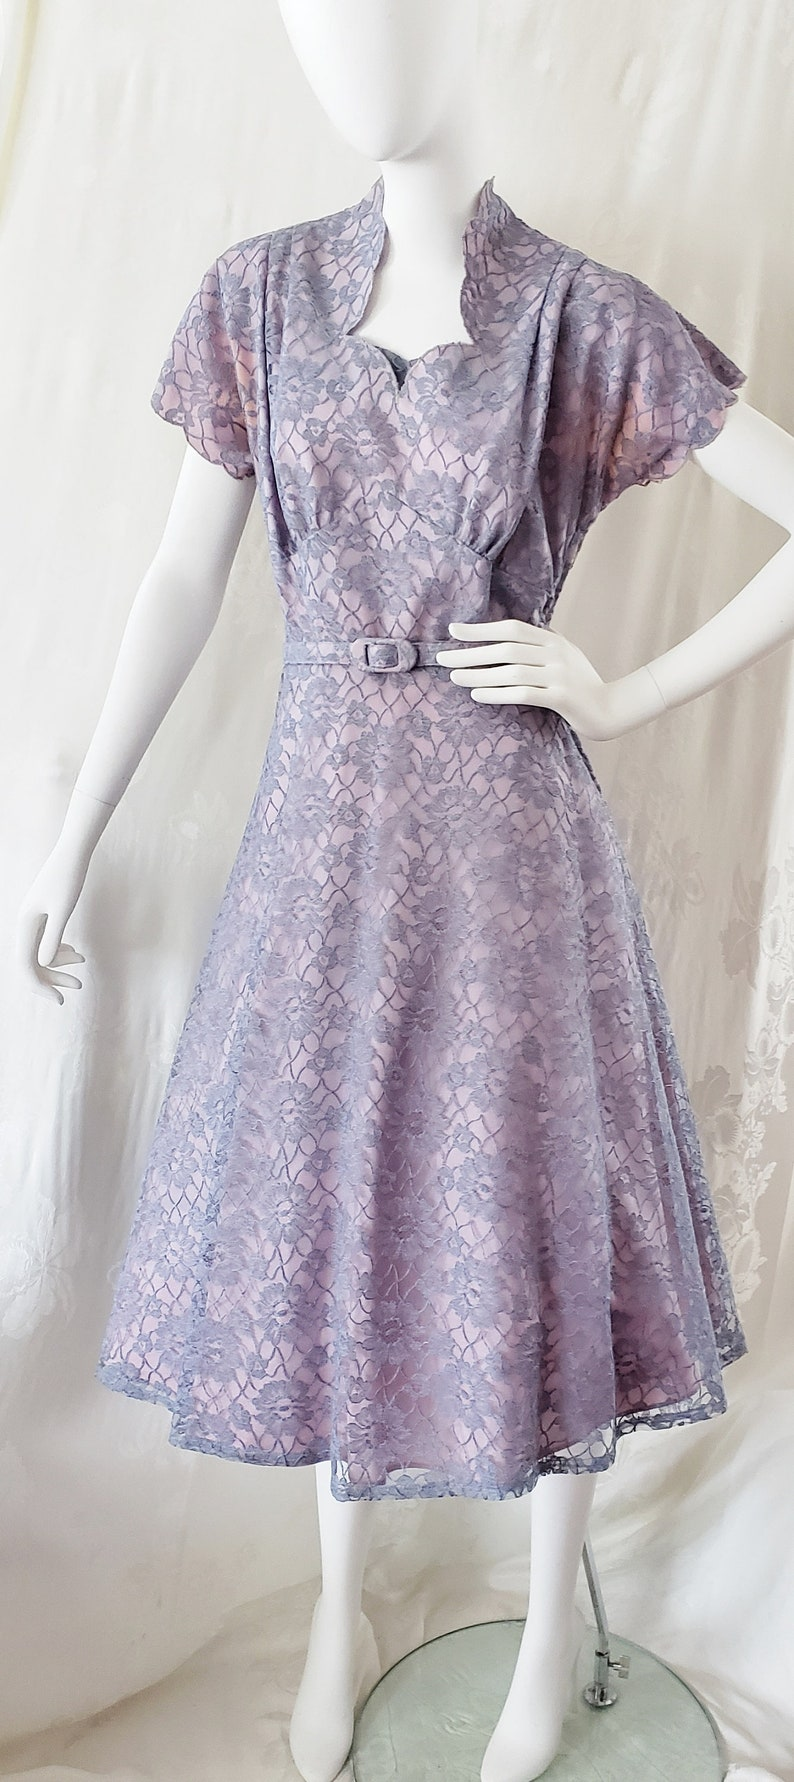 1950s Cocktail Dresses, Party Dresses 1950s Tea Dress of Lovely Lace SophisticatedLaRue $72.00 AT vintagedancer.com